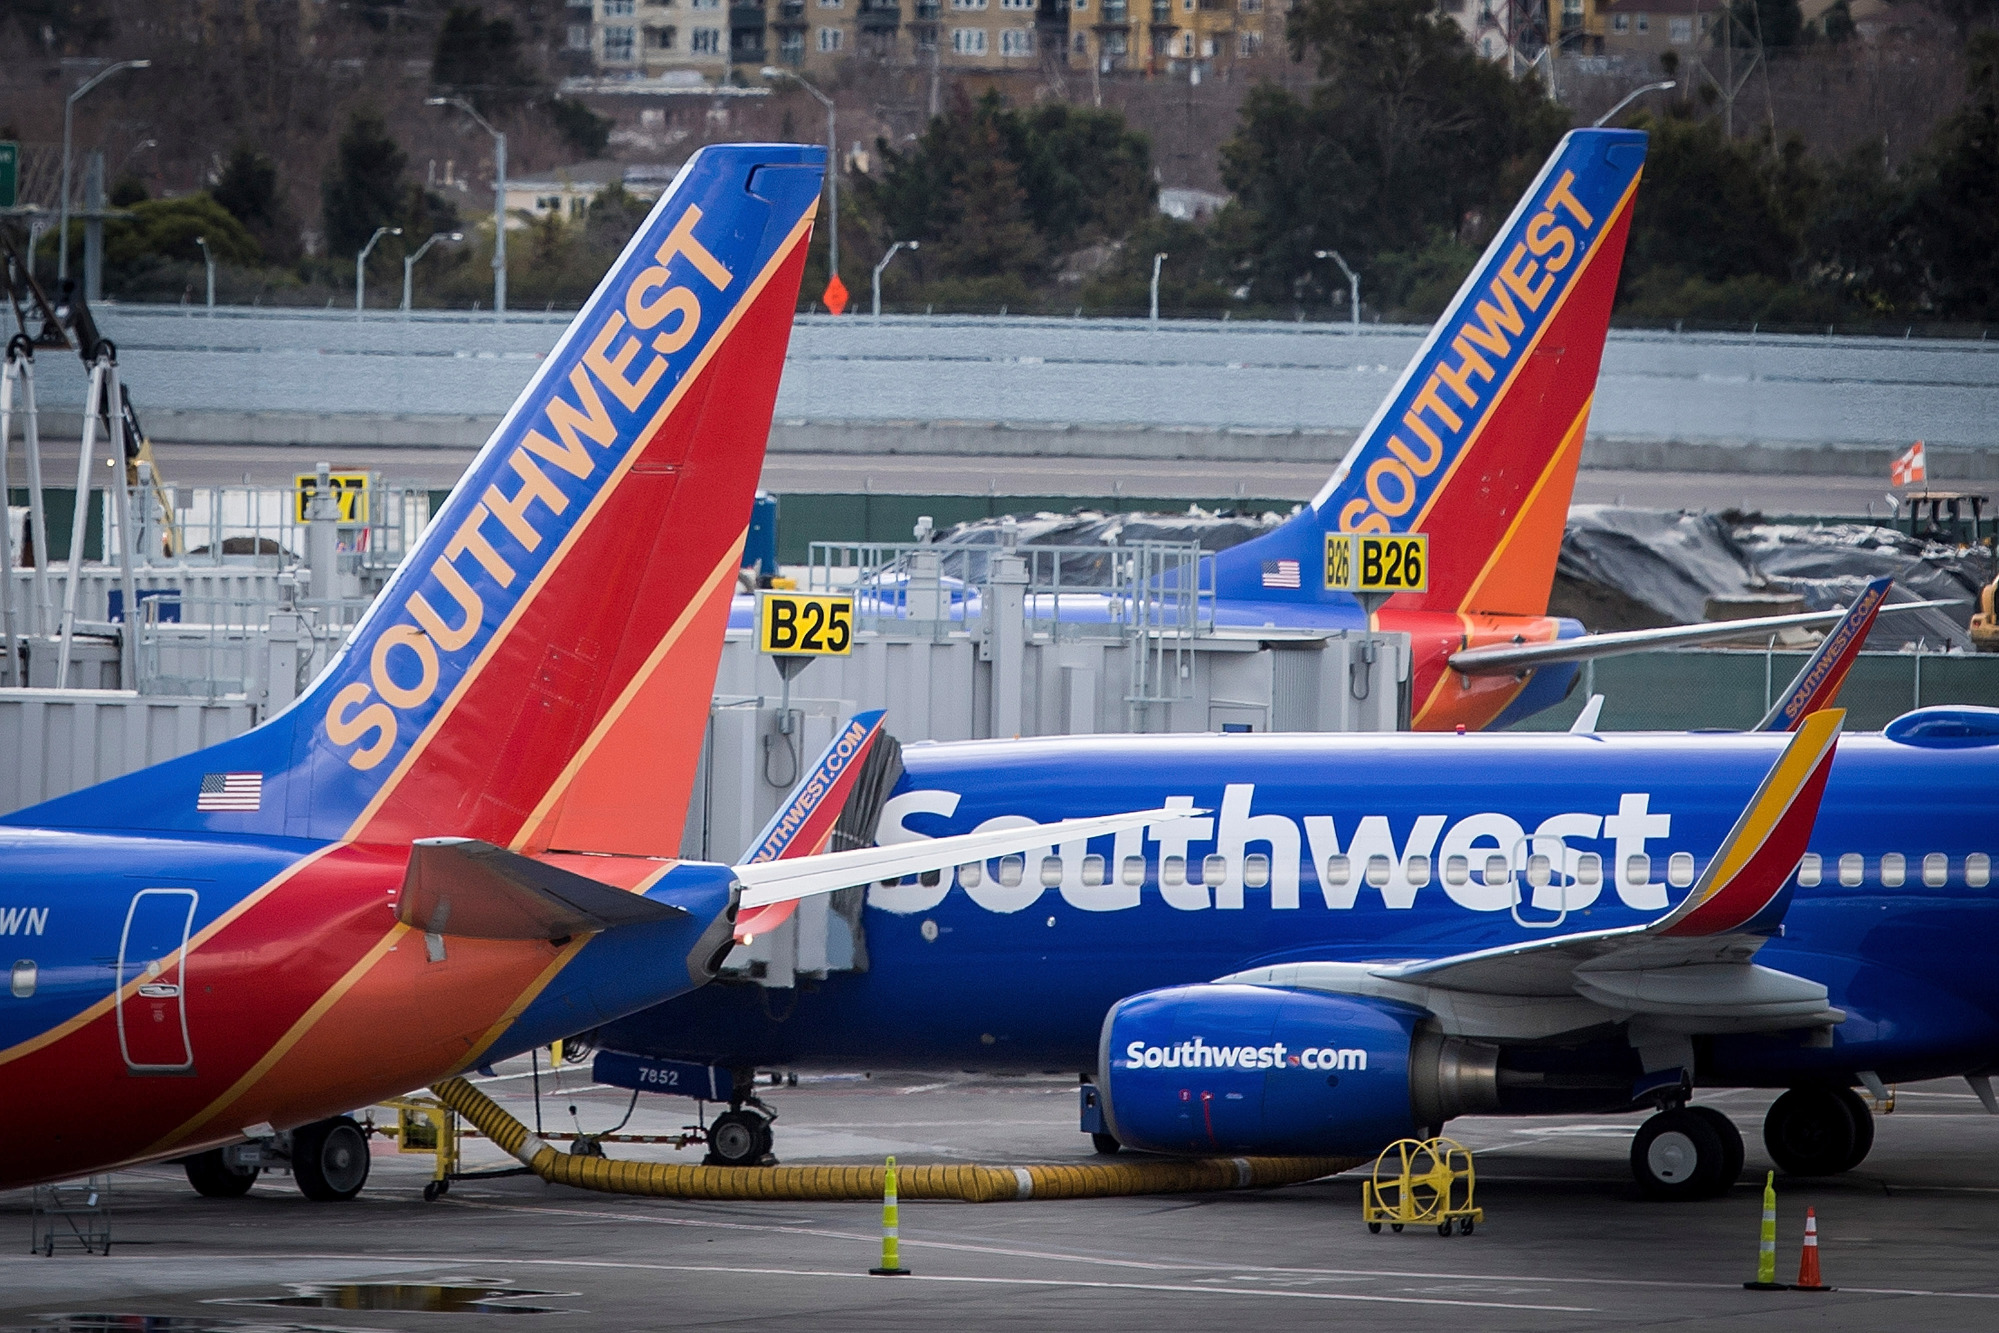 southwest airlines leadership Gregory joined southwest airlines in 2007, and has served in leadership positions in ground operations, financial planning & analysis, and network planning prior to joining southwest, gregory was a pilot and flight instructor.